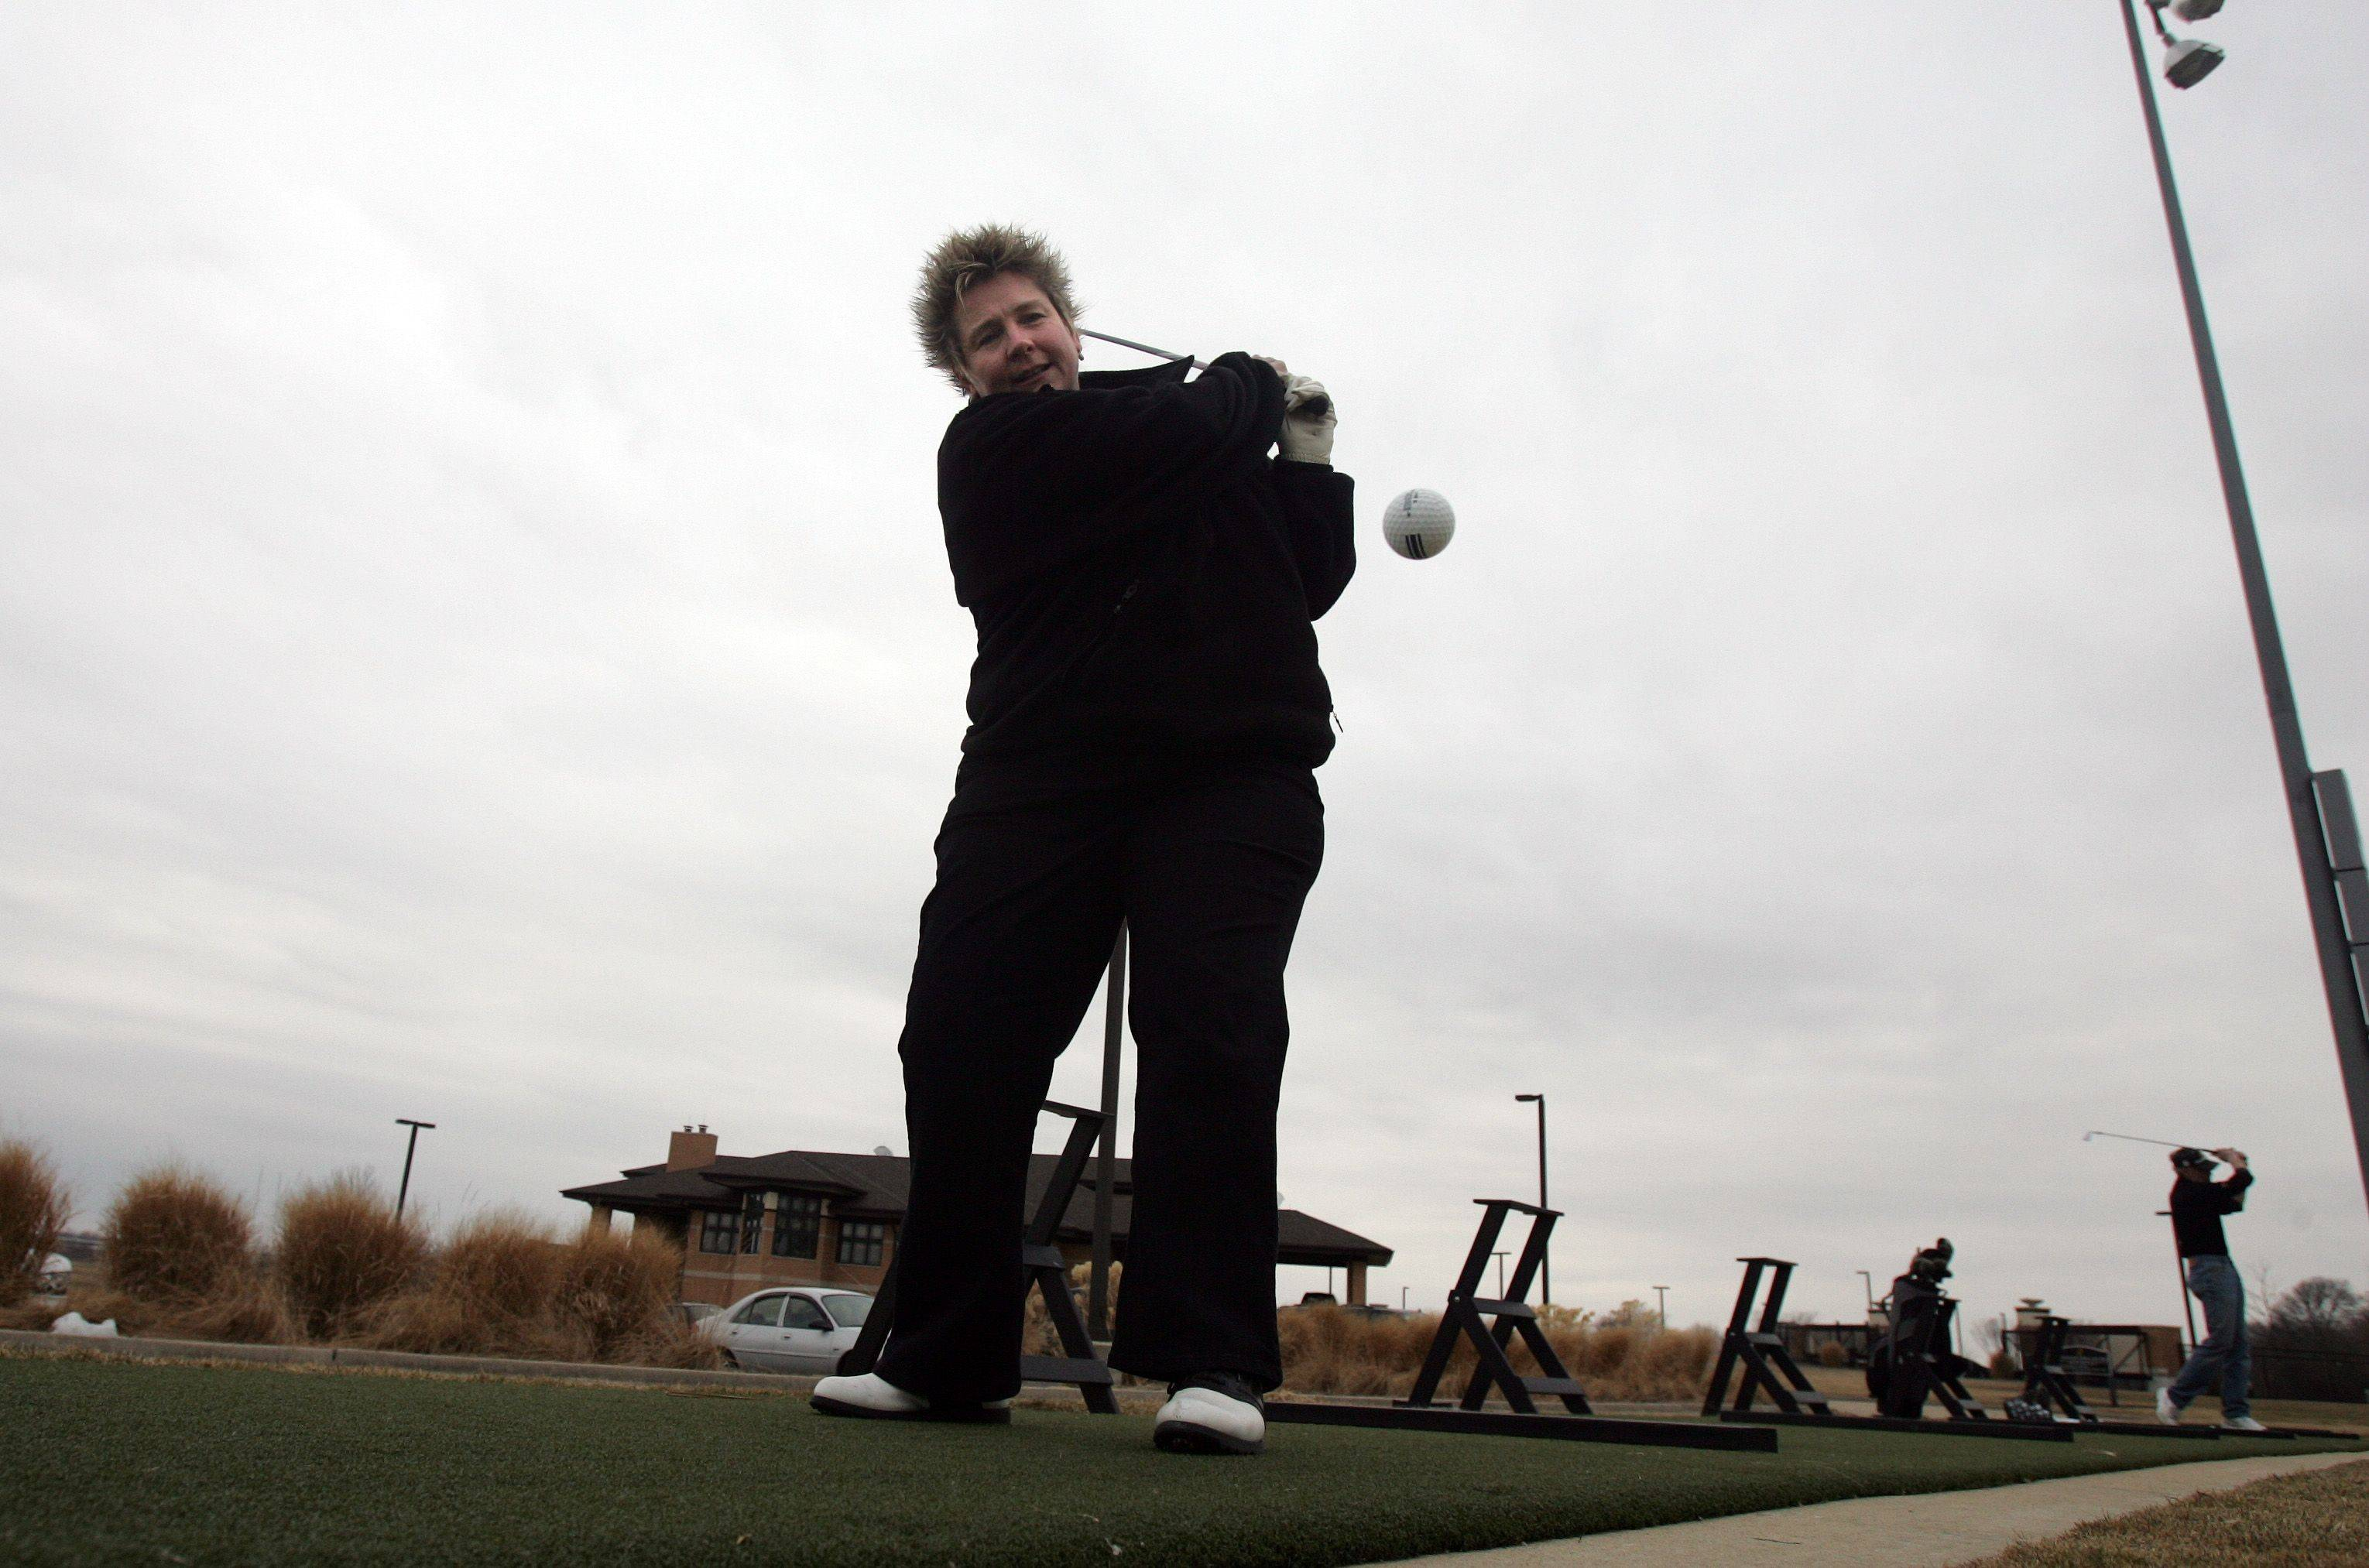 """You have got to get out and enjoy it, even if it is windy."" remarked Dona Stretch, of Elgin as she hit golf balls at the Highlands Golf Course in Elgin Thursday, March 17."